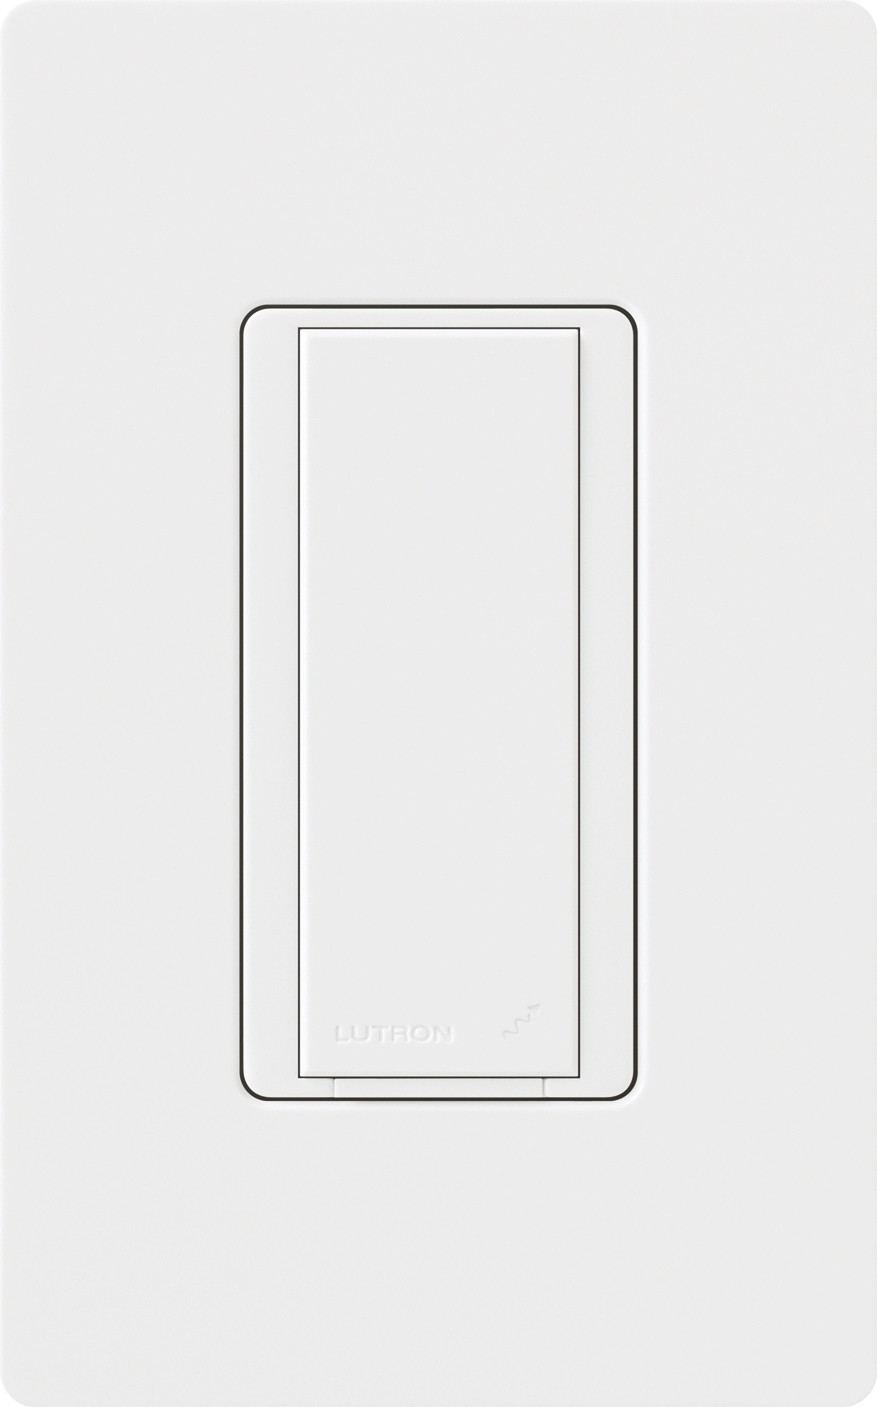 Lutron Rd Rs Wh Radiora2 Remote Switch Rd Rs Wh